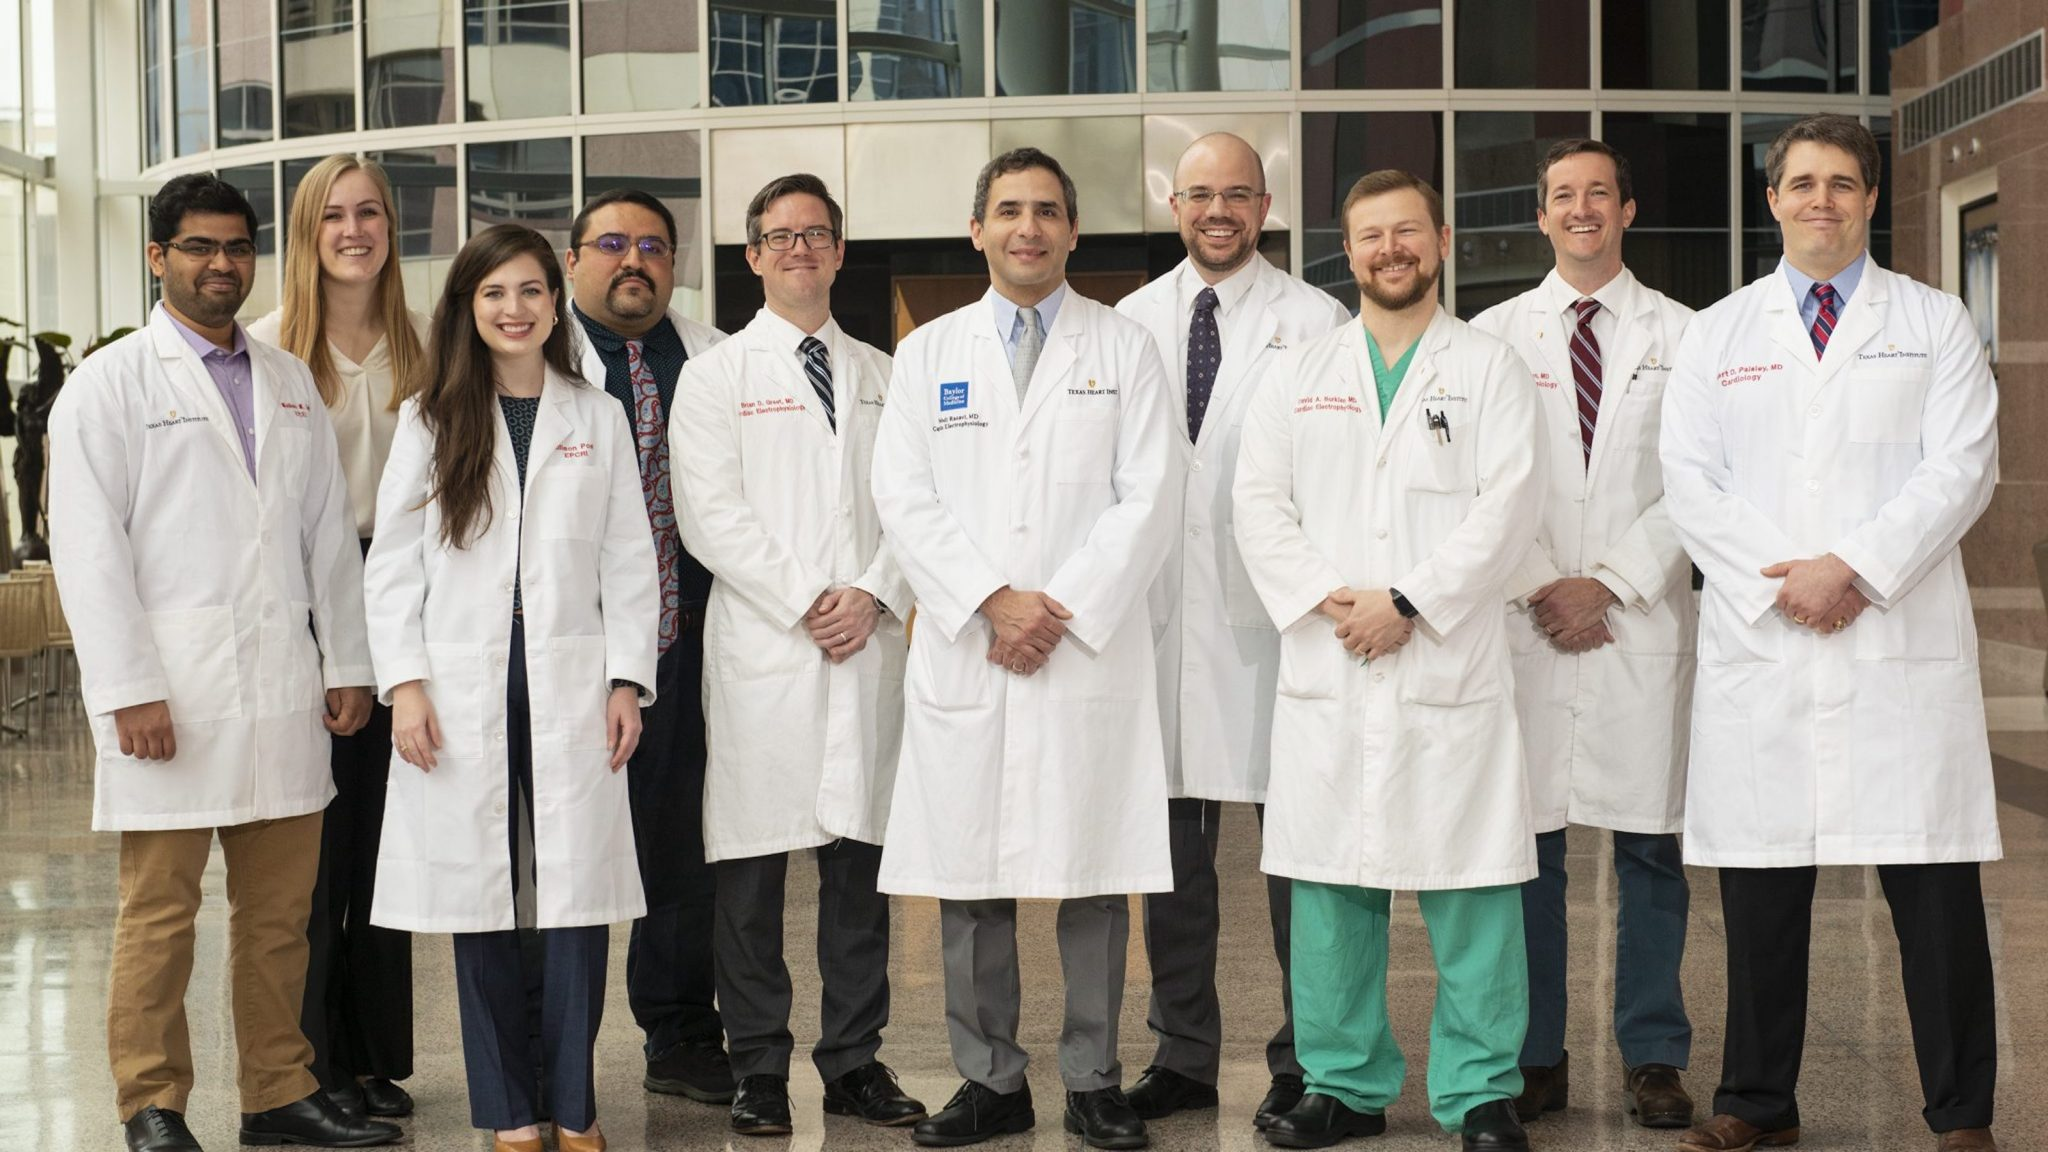 Texas Heart Institute Is A Leader In Cardiovascular